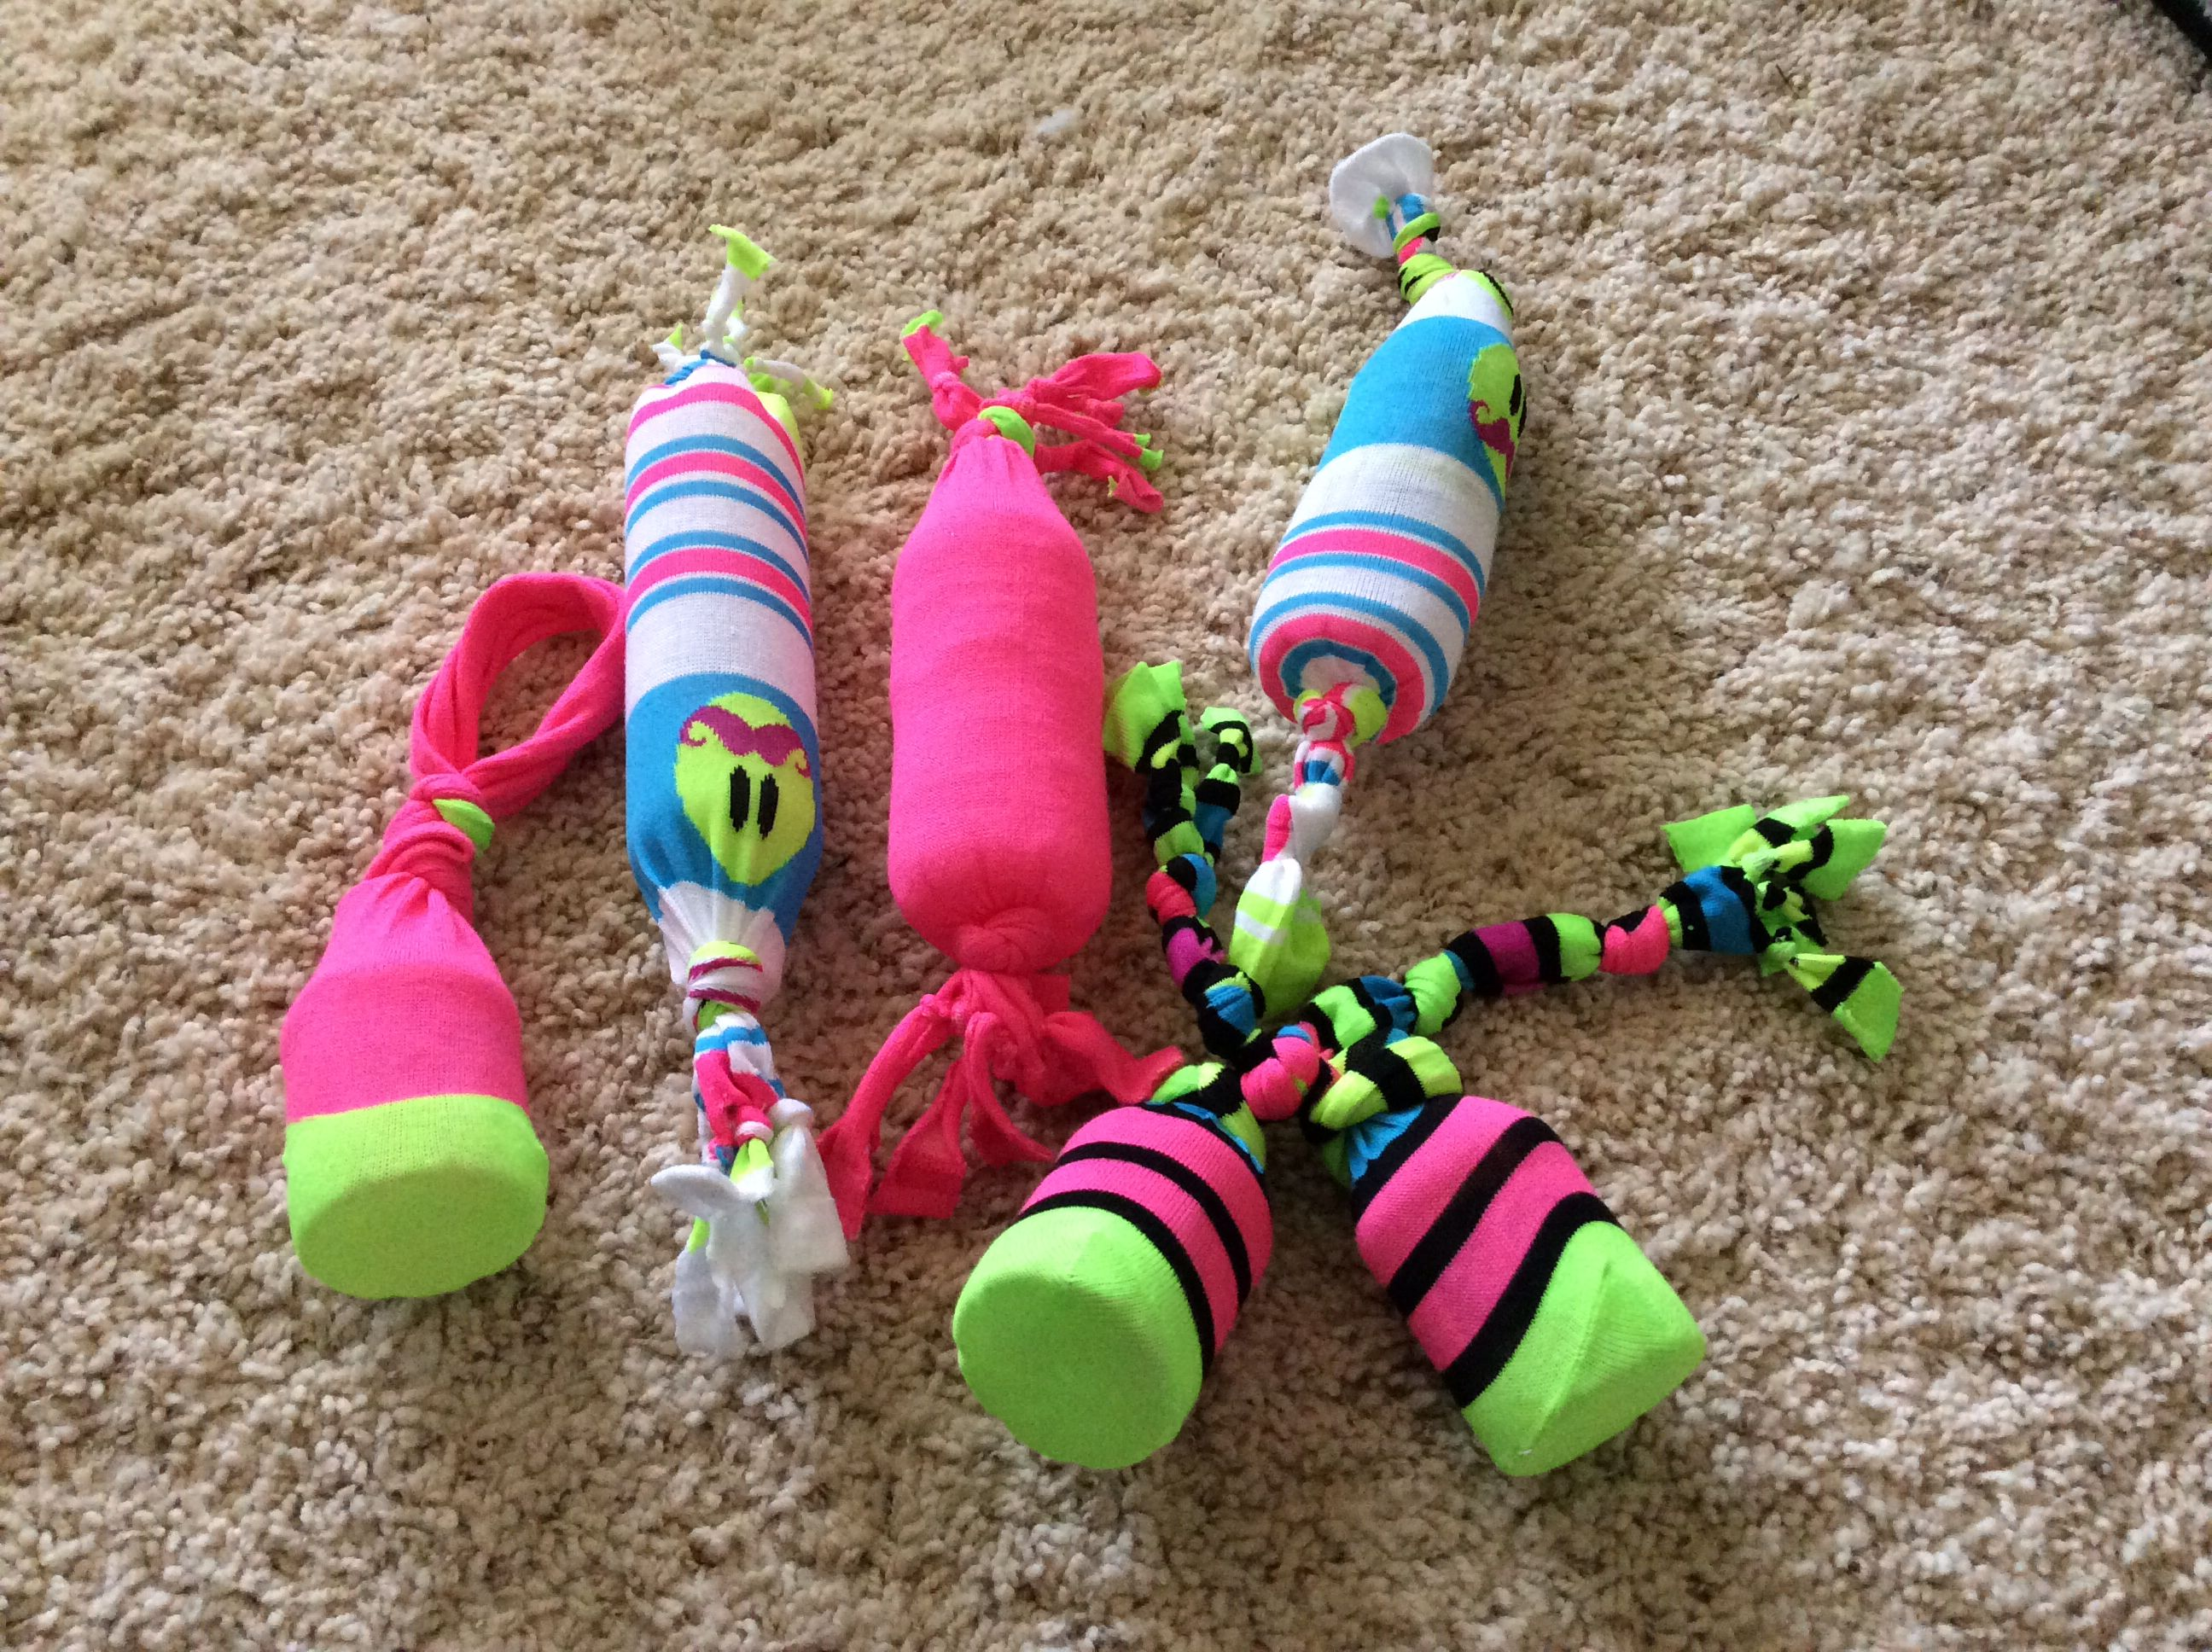 Easy To Make Dog Toys Using Socks And Empty Water Bottles Diy